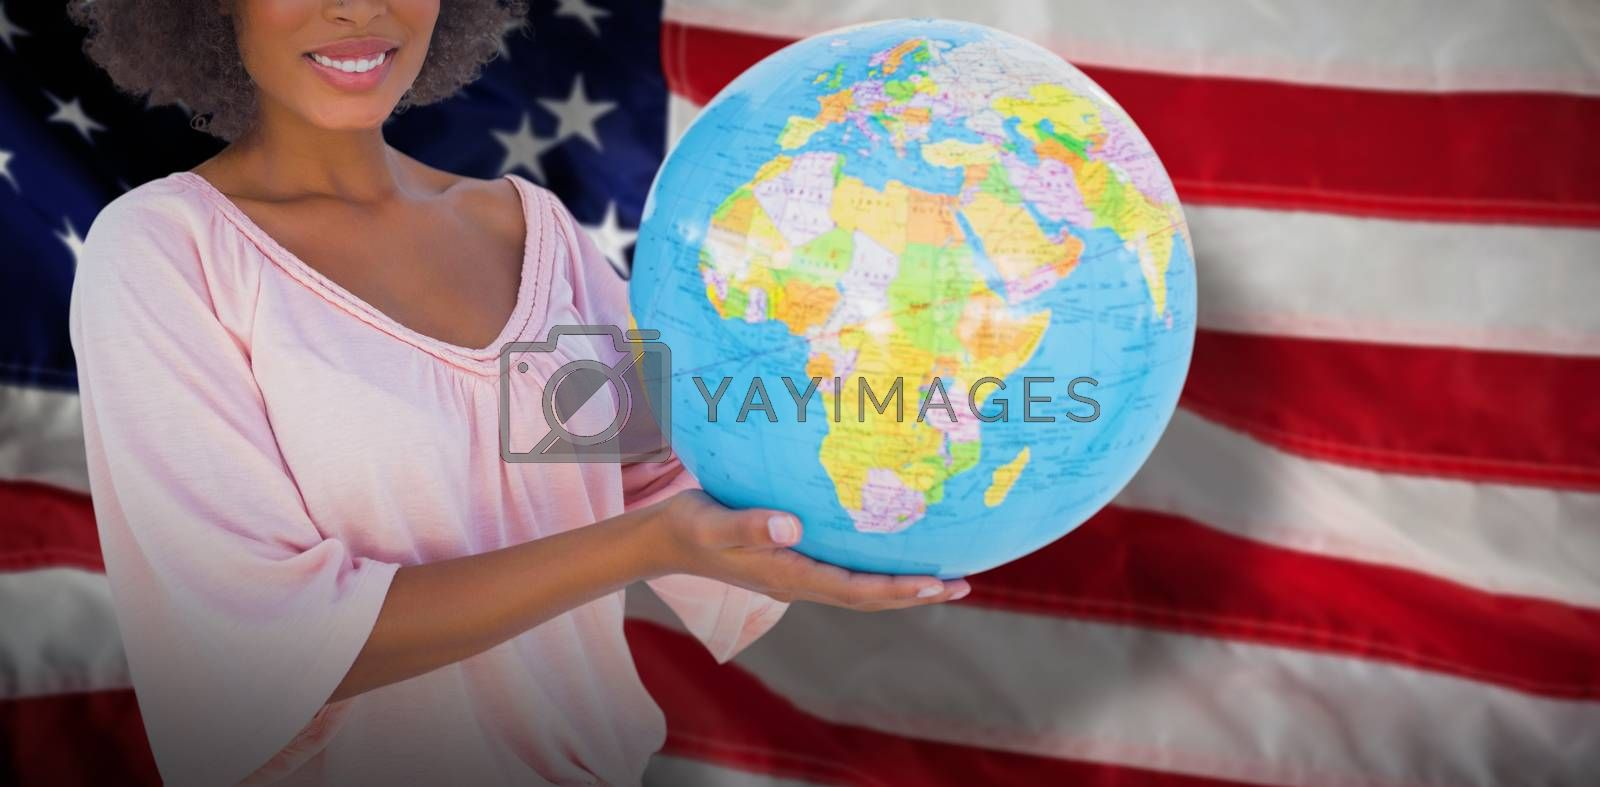 Composite image of smiling woman holding globe by Wavebreakmedia